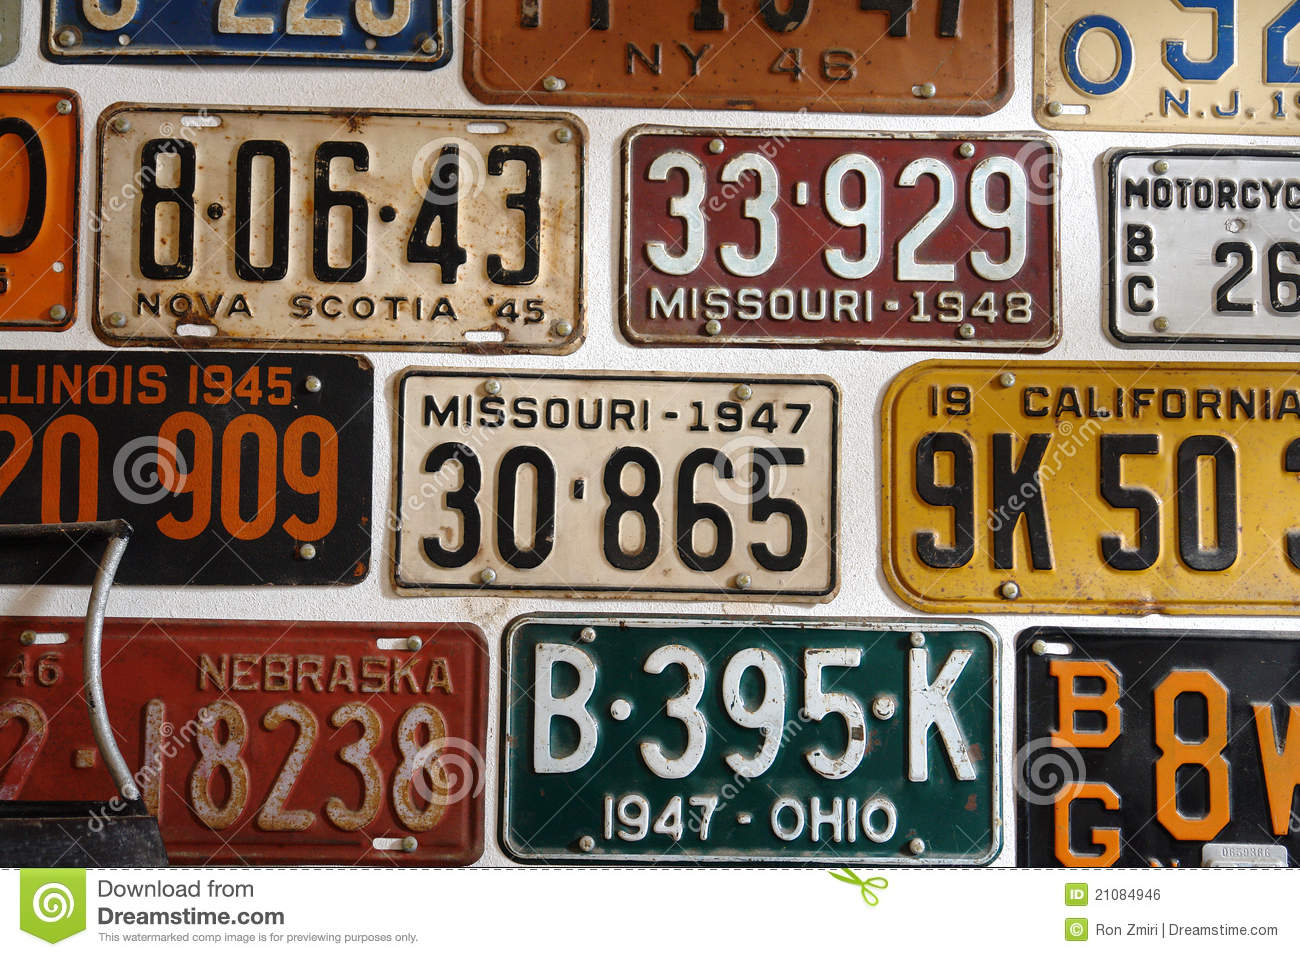 Vintage American Cars Number Plates Stock Photo - Image: 21084946